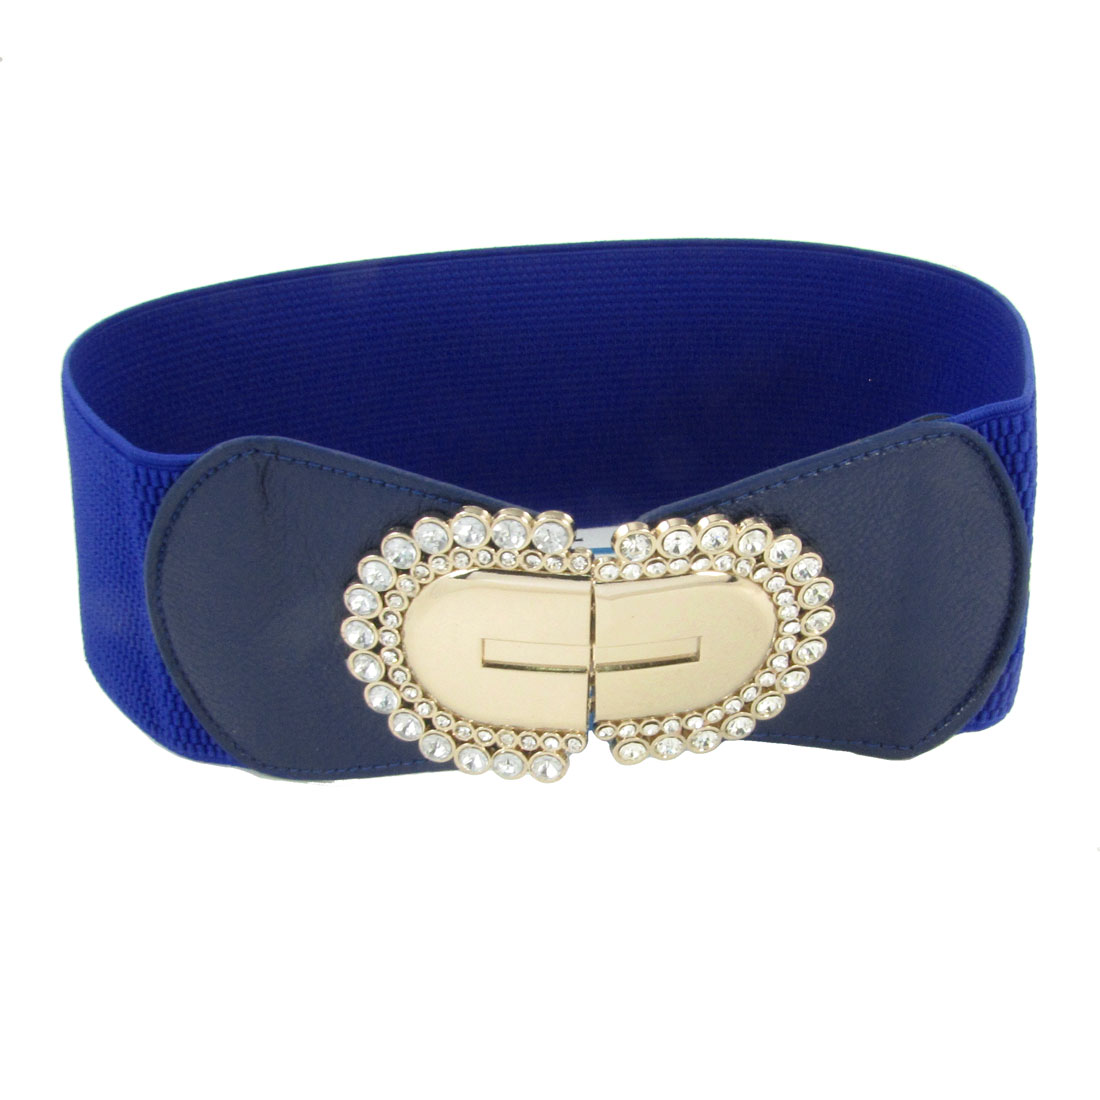 Oval Design Metal Interlocking Buckle Textured Elastic Waistband Blue